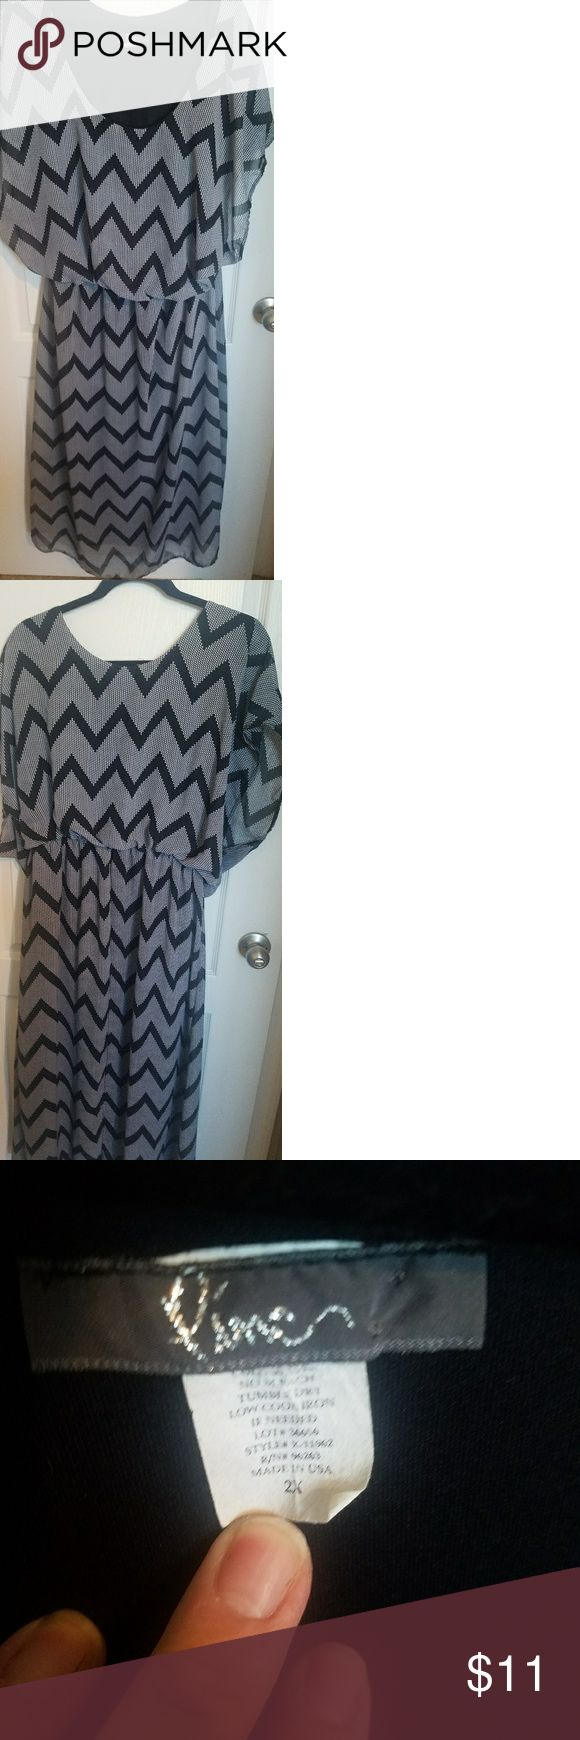 Chevron print dress Size 2x great dress for the office or casual dinner outing fit nicely plus size 2x piner Dresses Asymmetrical